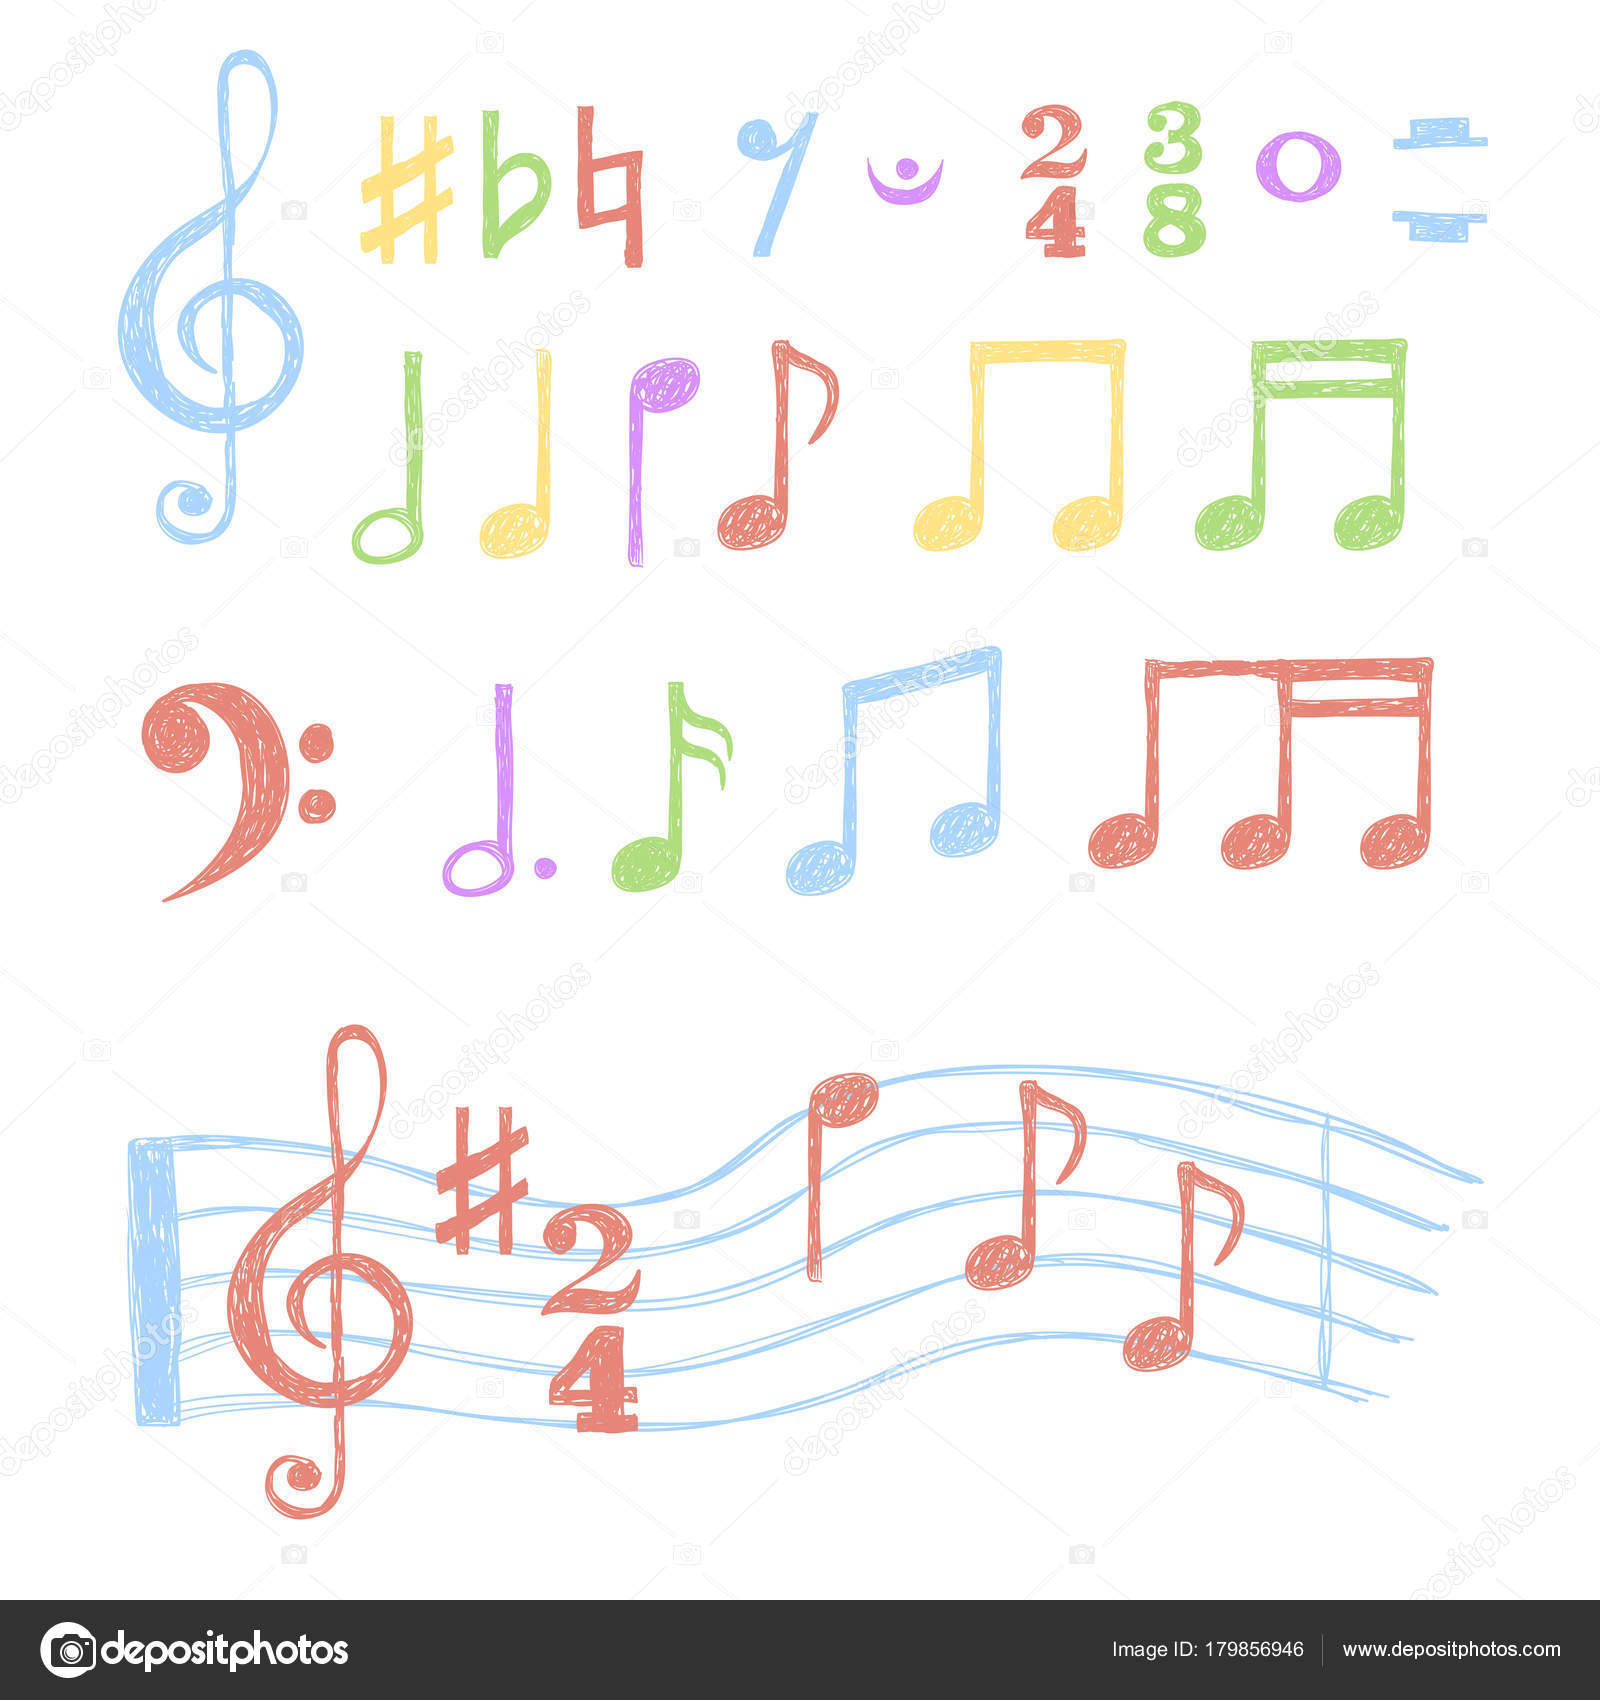 Colorful music notes set collection sketch music symbols isolated colorful music notes set collection sketch music symbols isolated white stock vector buycottarizona Gallery